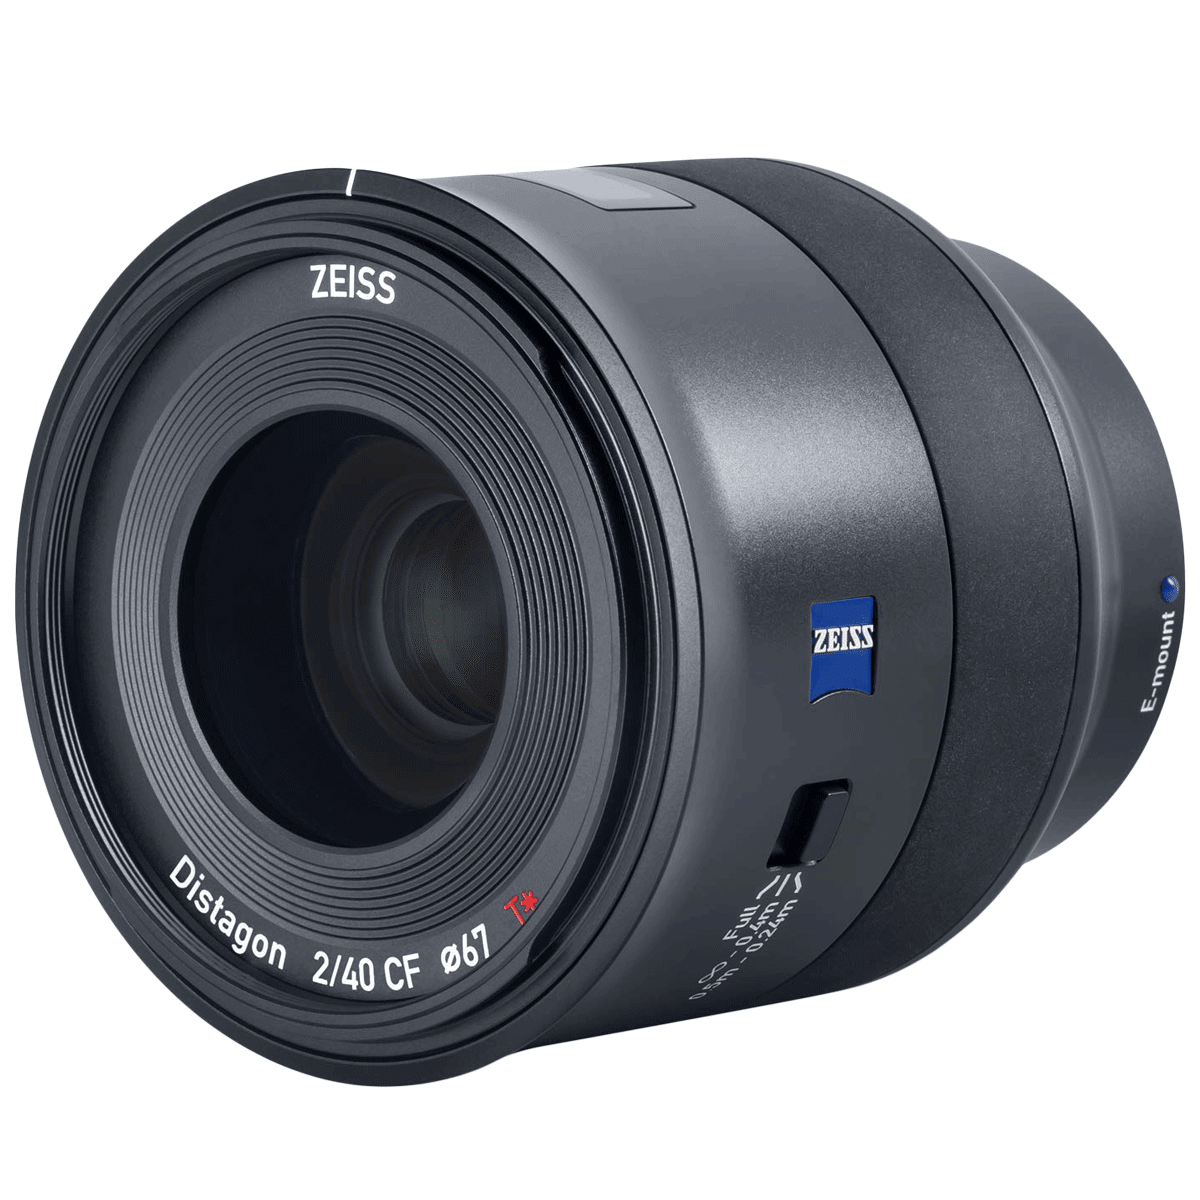 Carl Zeiss Batis 40 mm f/2.0 – f/22 Wide Angle Lens for Sony E-Mount Mirrorless and Full Frame Cameras (Weather and Dust Sealing, 000000-2239-137, Black)